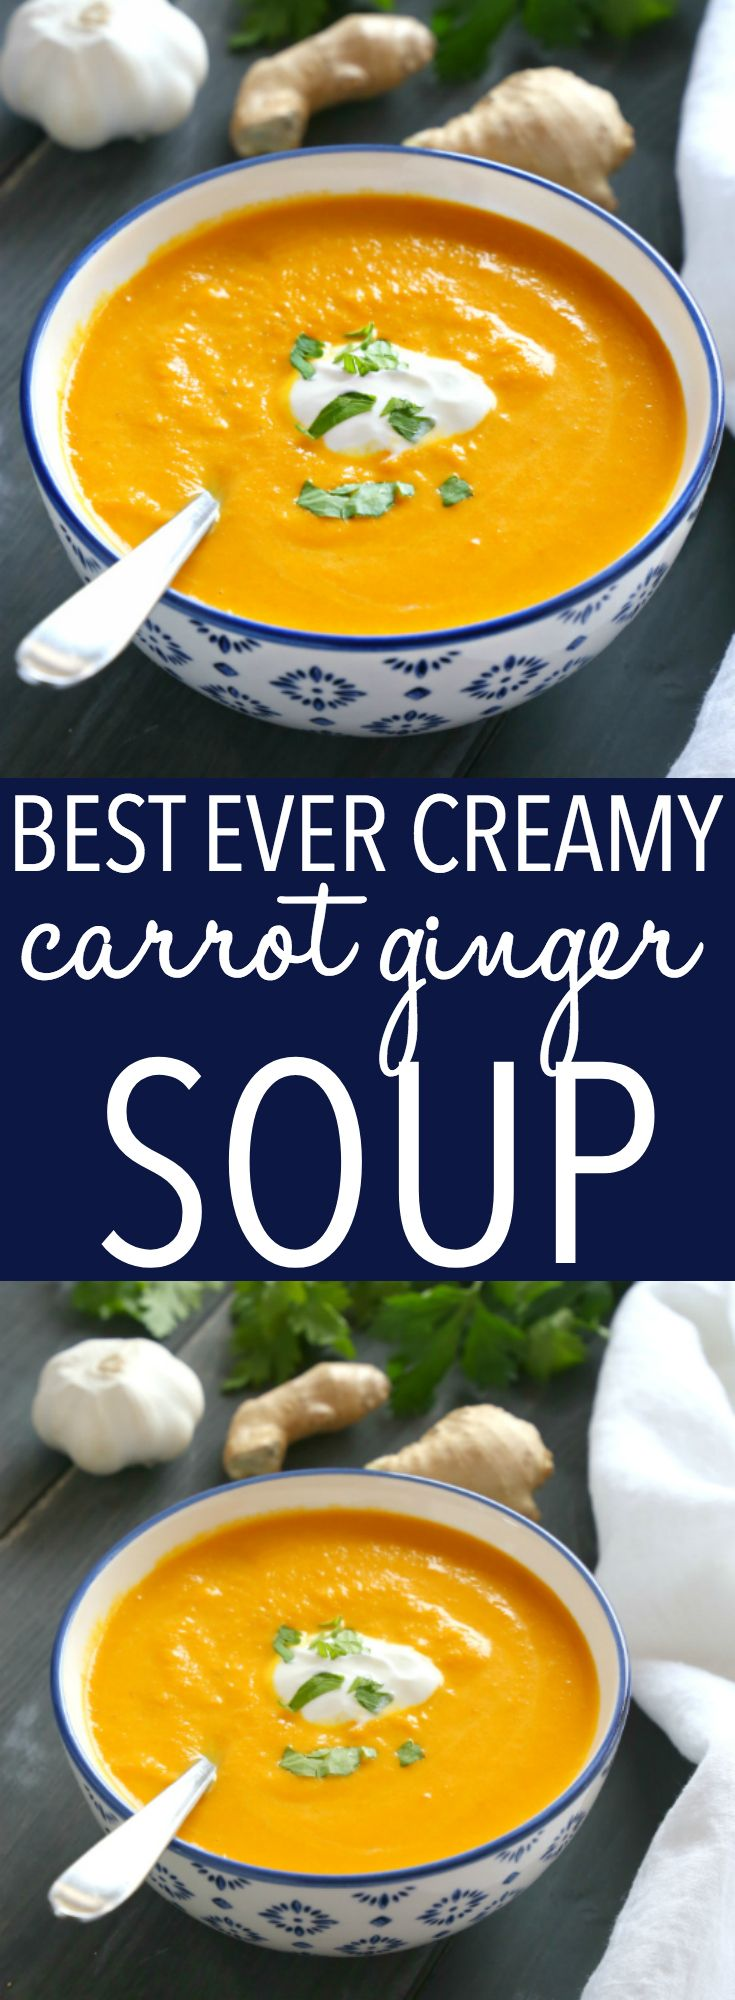 This Best Ever Creamy Carrot Ginger Soup is the best carrot soup that's warm, hearty, and packed with spicy ginger and creamy coconut. It's healthy, made with only a few simple ingredients, and it's so easy to make! Recipe from thebusybaker.ca! #bestevercarrotsoup #creamycarrotsoup #carrotsoupdairyfree #vegancarrotsoup via @busybakerblog